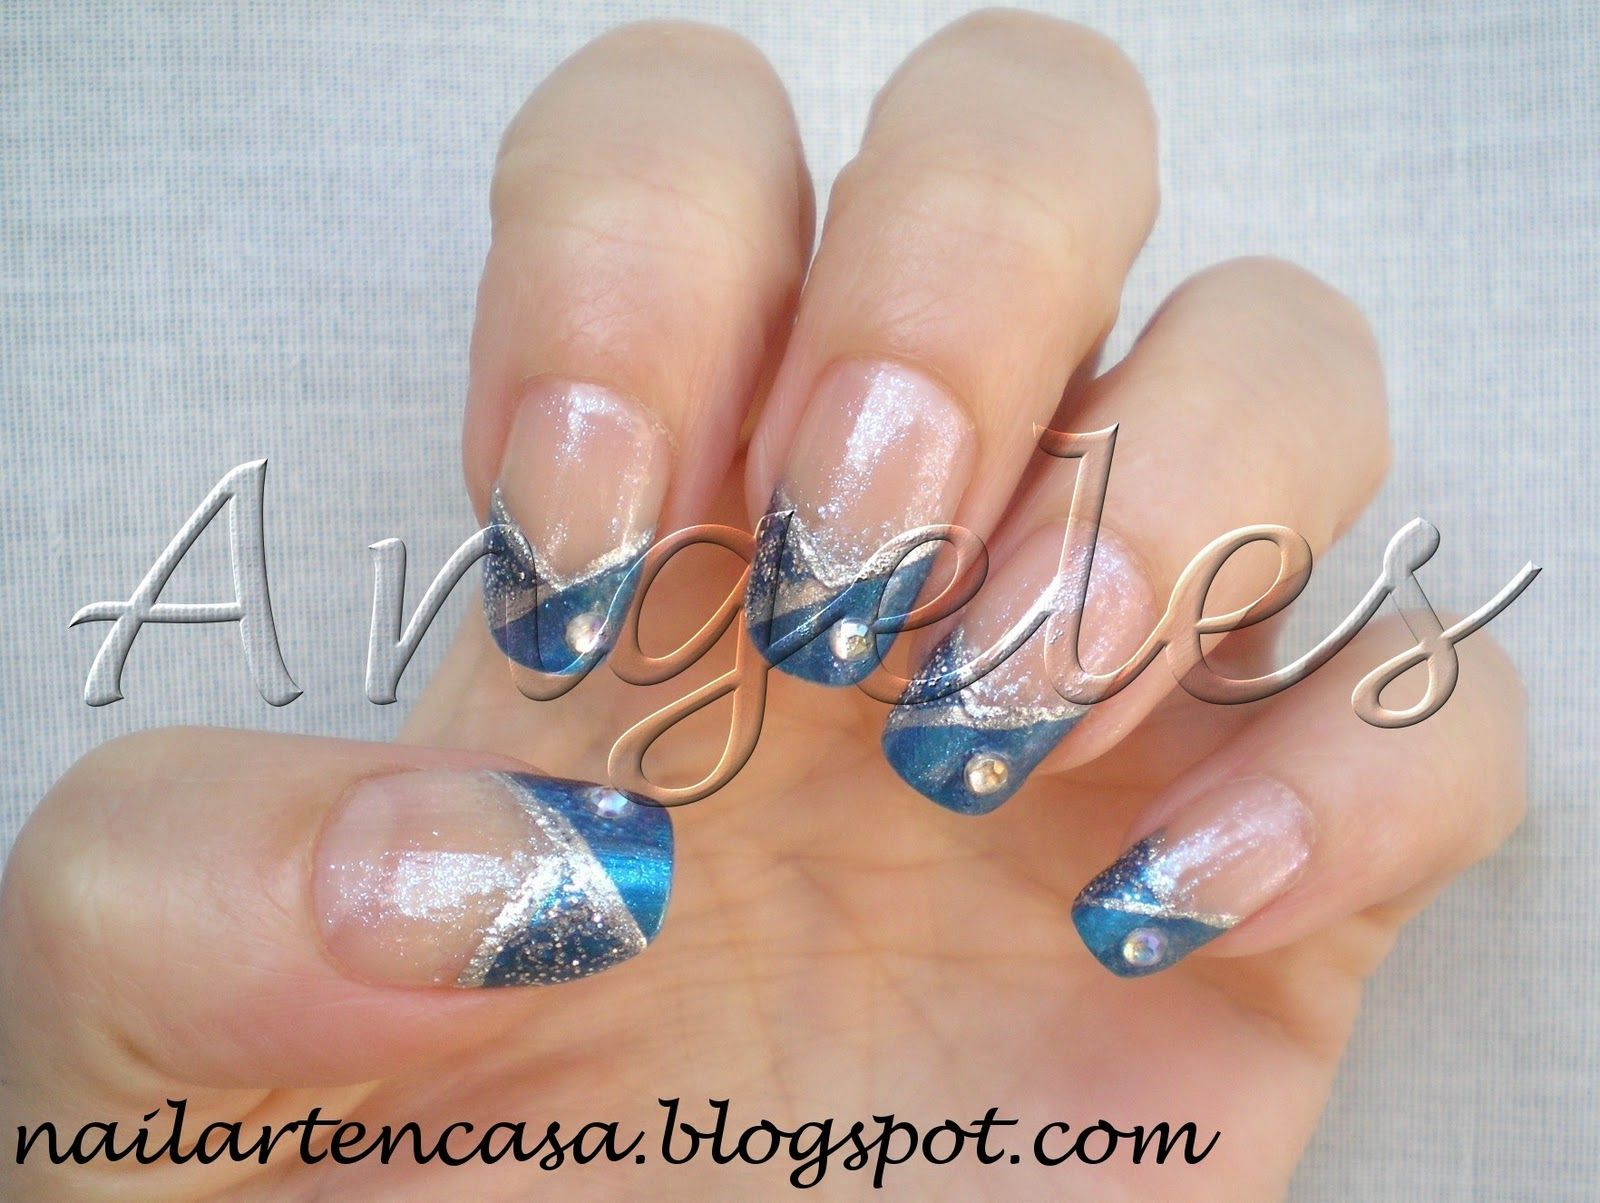 pedicura azul - Buscar con Google | My nails! ;) | Pinterest ...